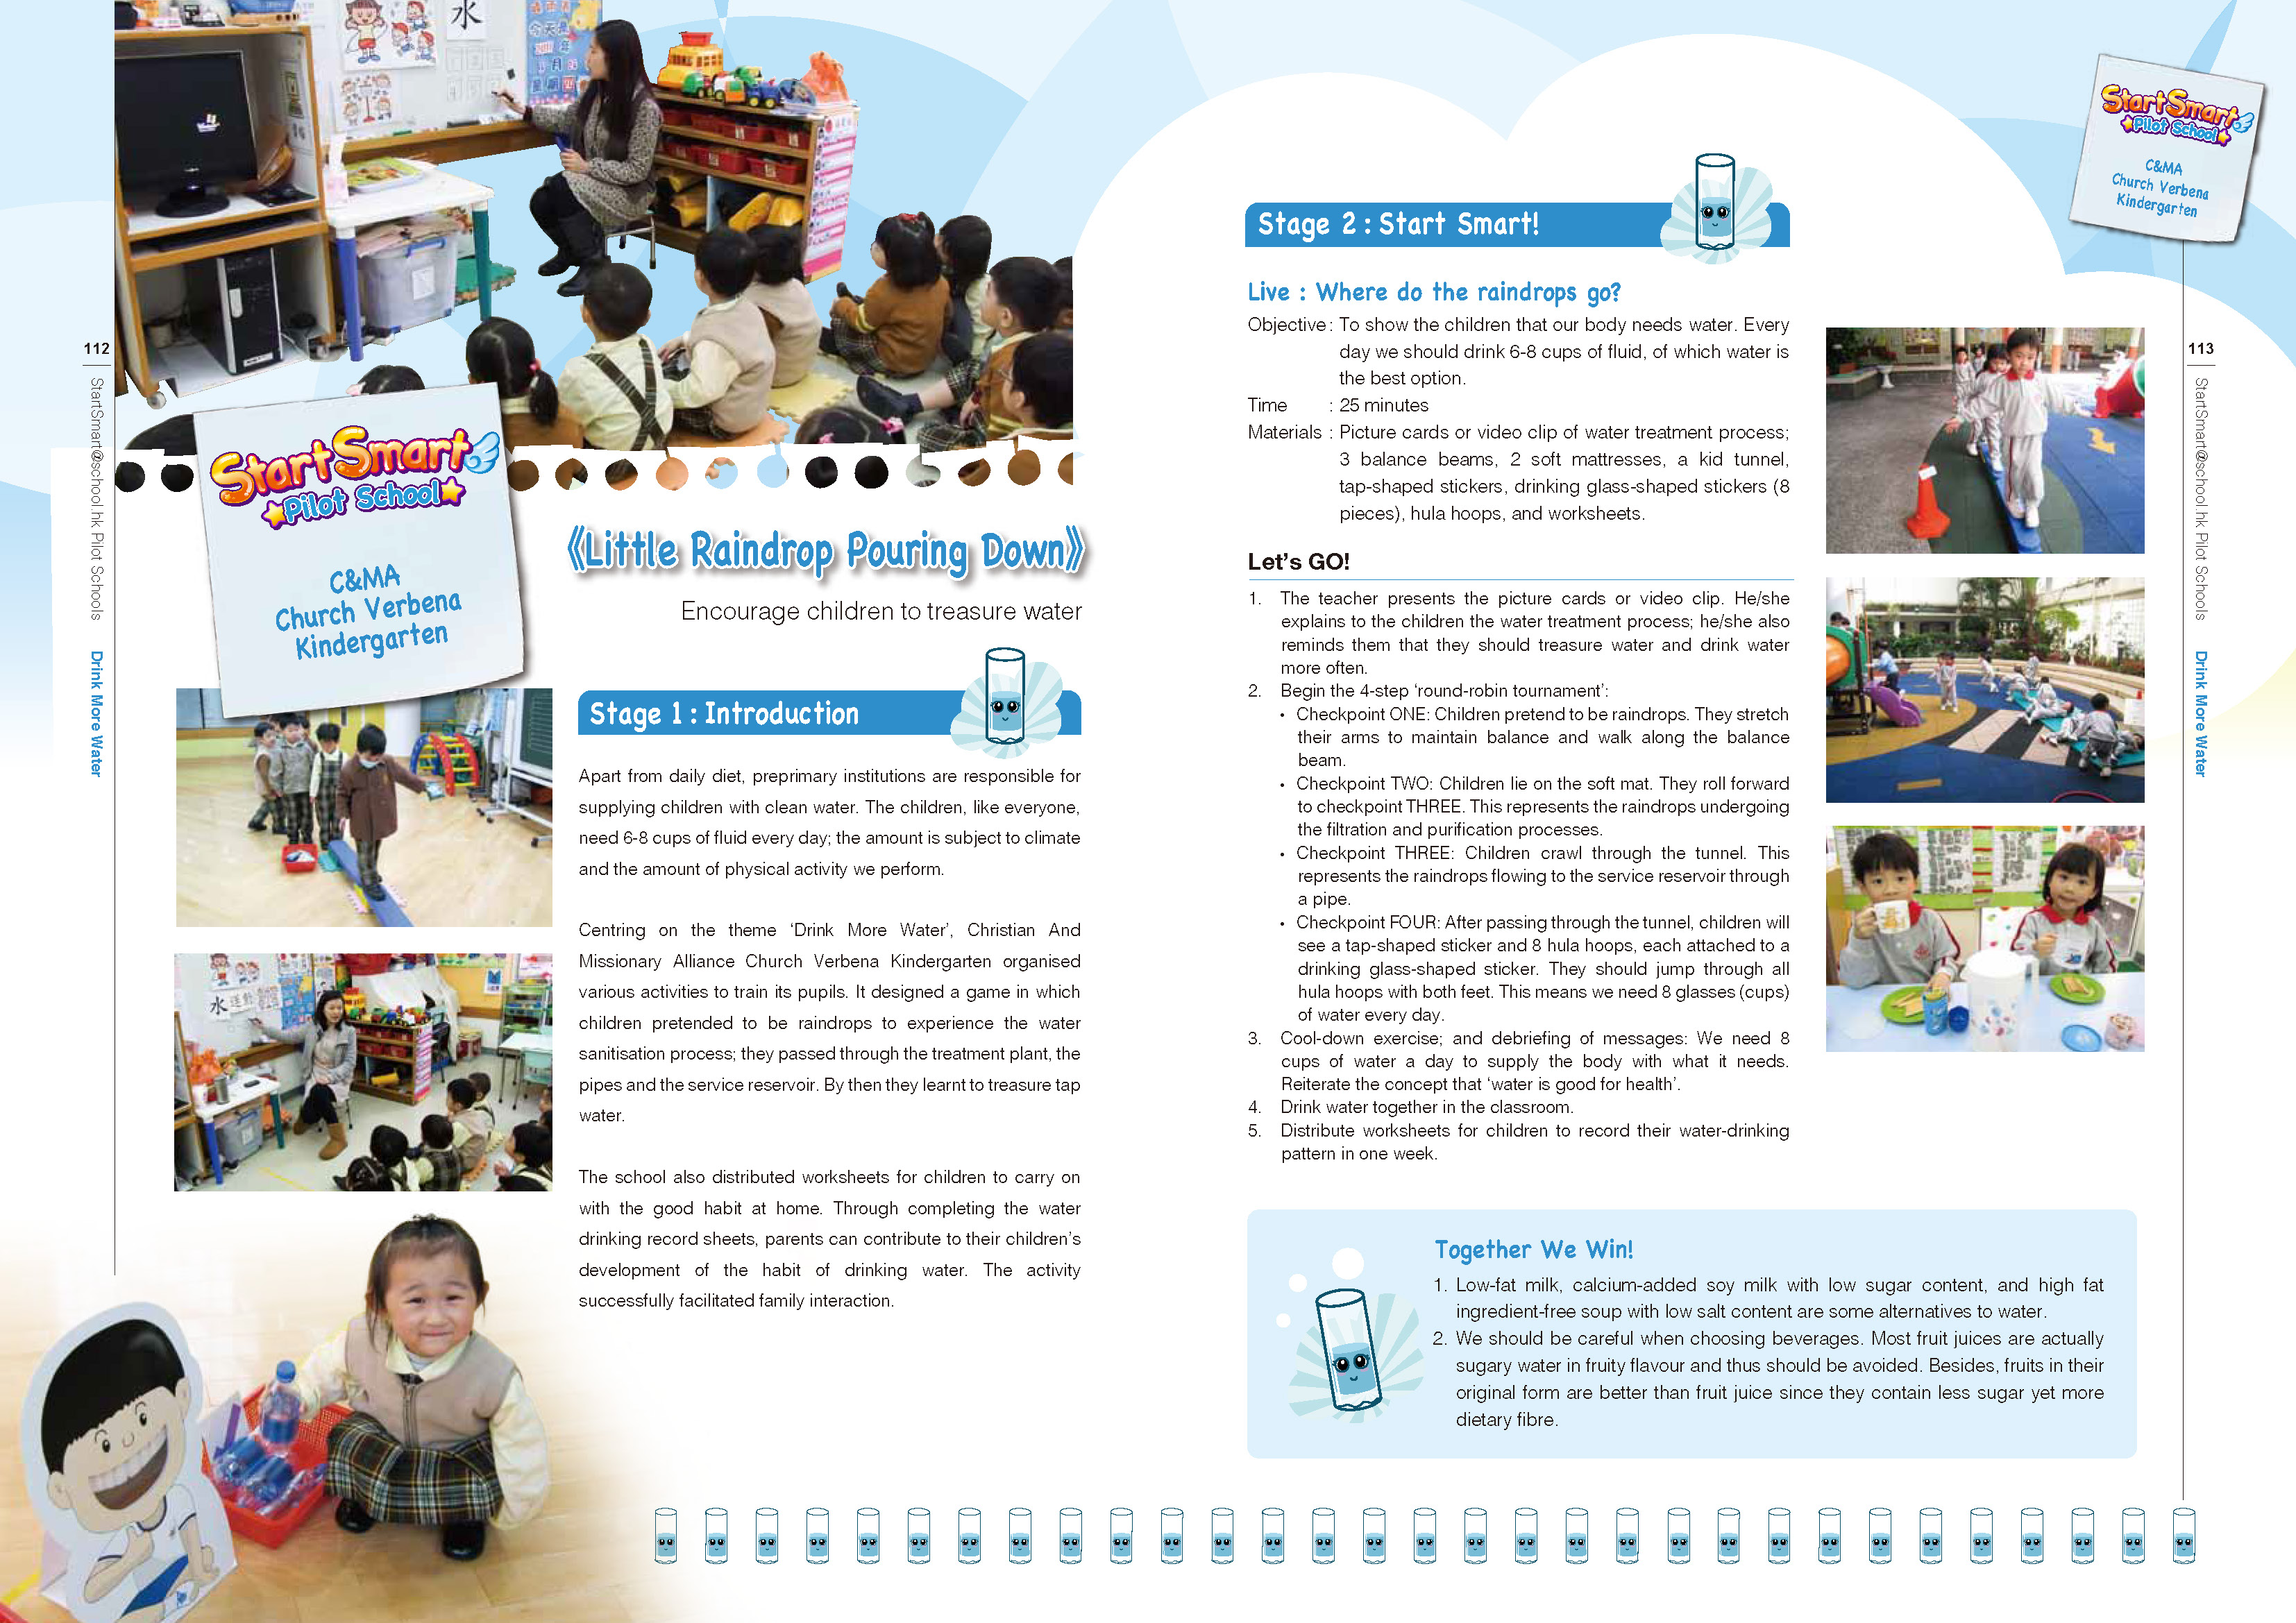 StartSmart Pilot School C&MA Church Verbena Kindergarten Page1